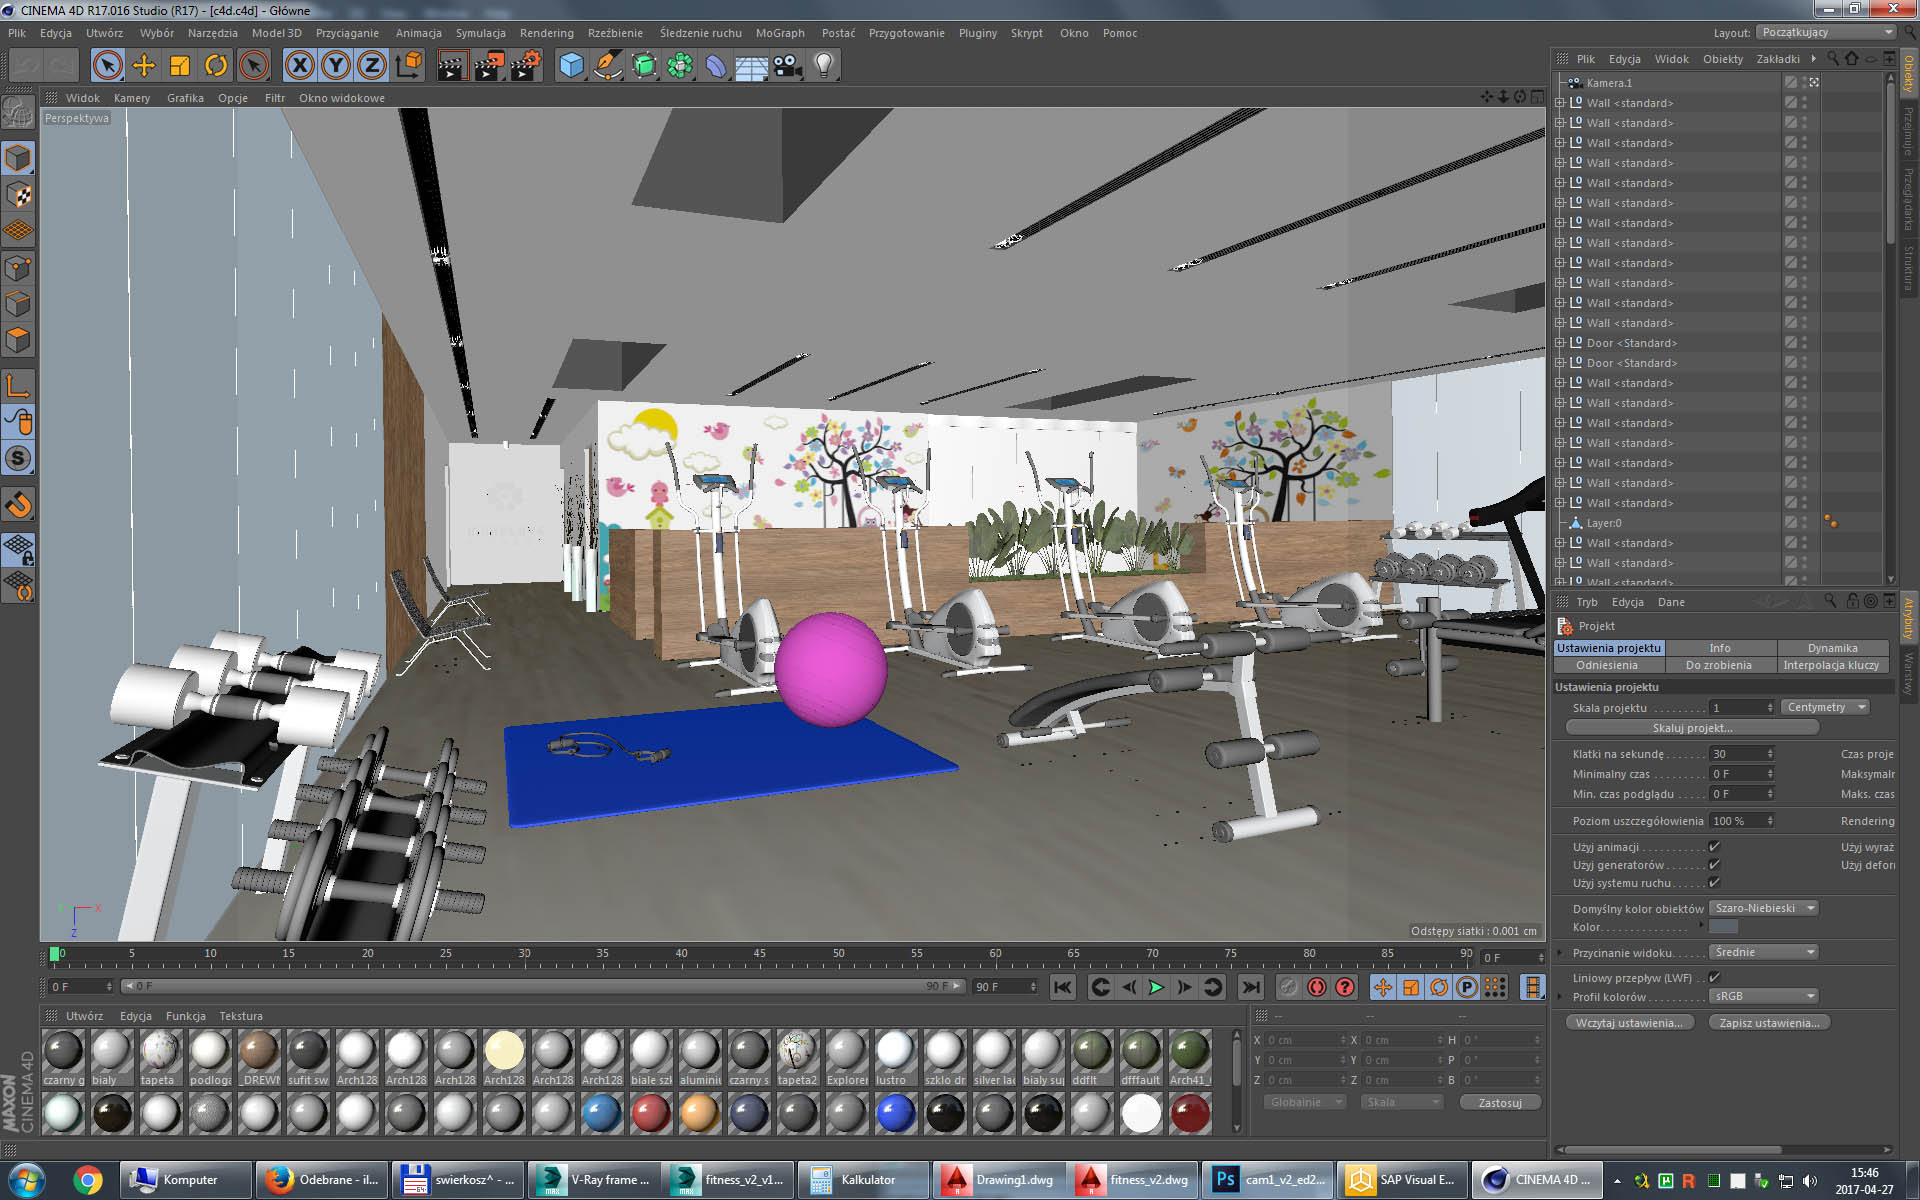 Gym fitness interior design idea with kids area 3d model Easy 3d modeling software